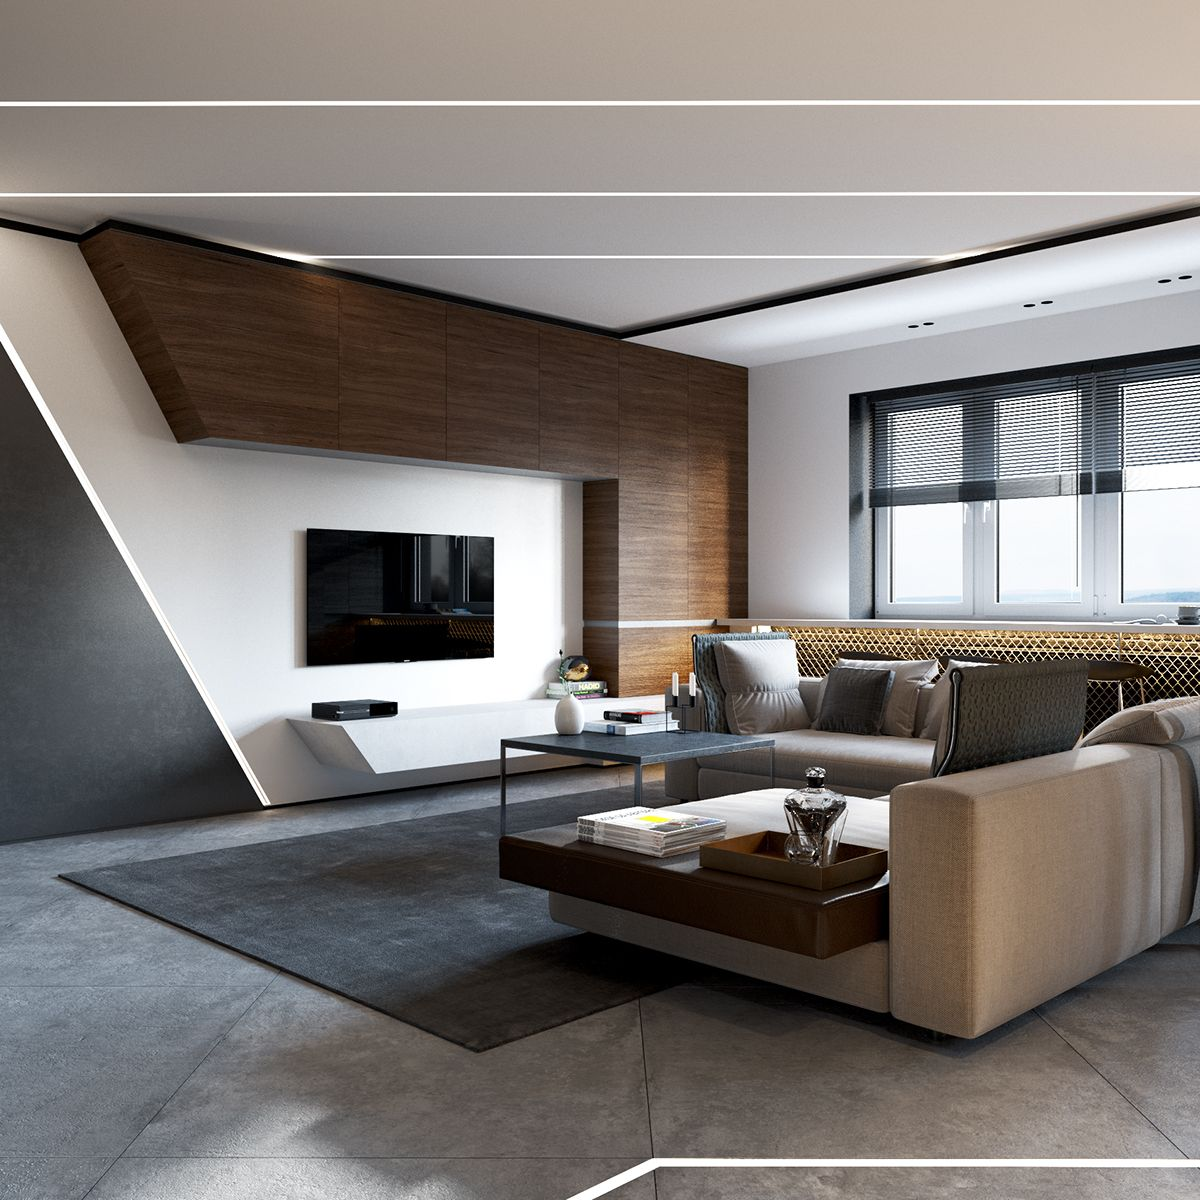 Modern Contemporary Living Room Sleek Contemporary Living Room Concrete And Wood Is A Nice Mix